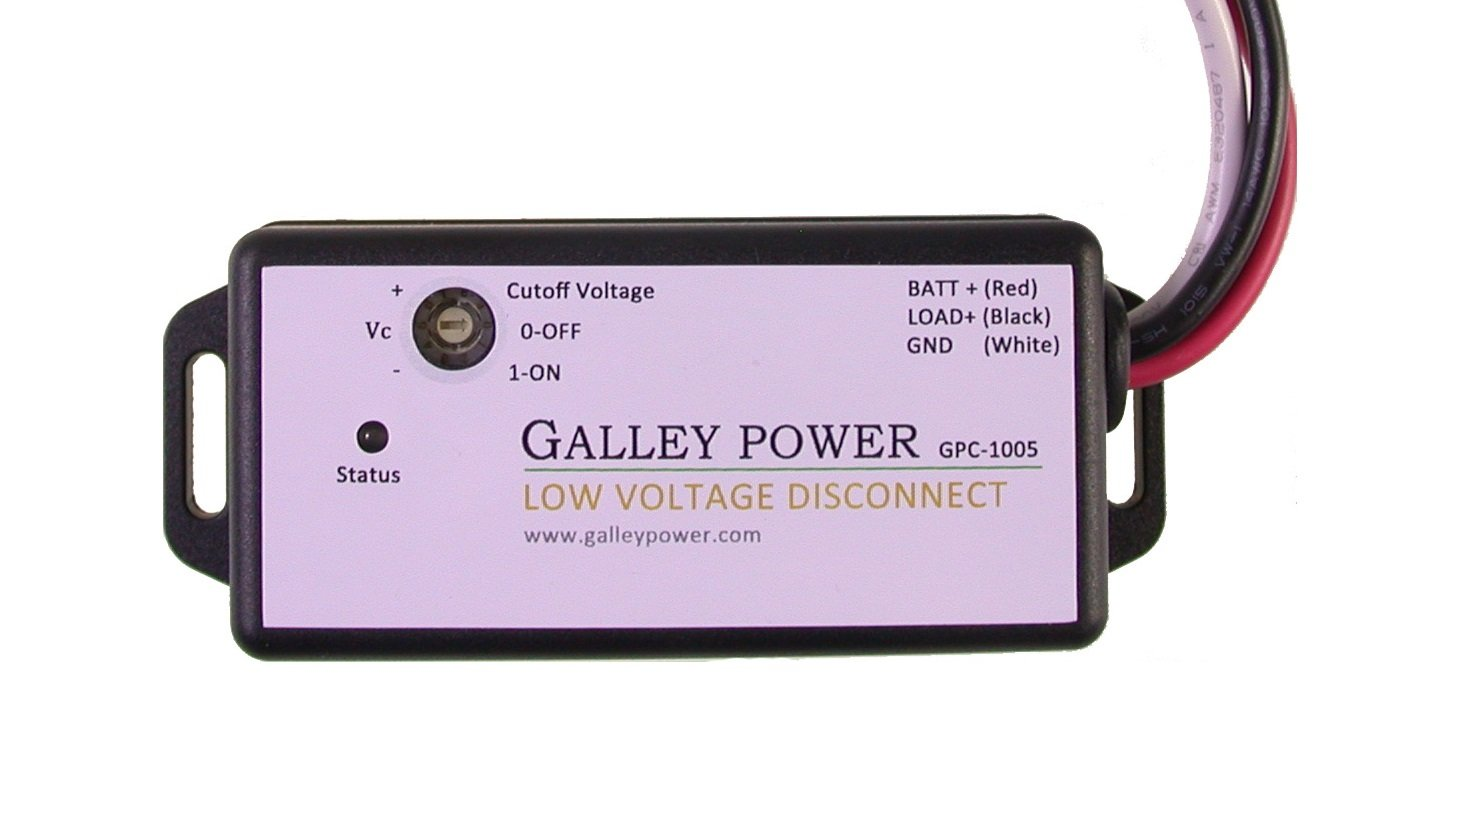 Galley Power Llc Low Voltage Battery Disconnect 20a Volt 4 To 10 Ah Charger Circuit Using A 12 Relay 12v 24v Auto Detect Garden Outdoor